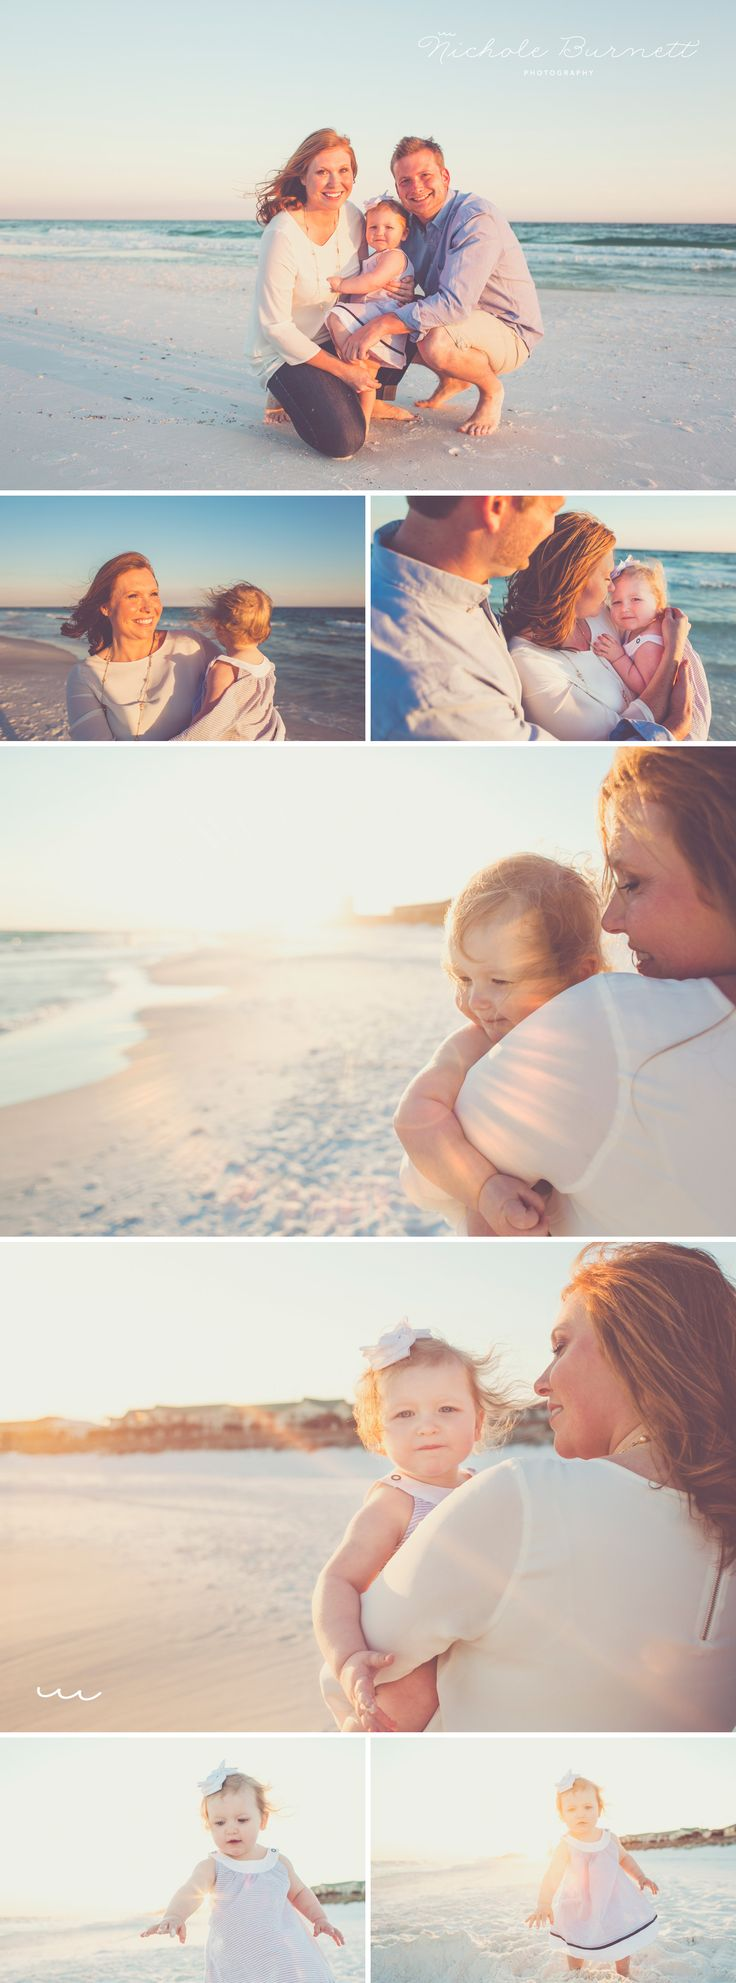 Candid Beach photography inspiration | Family Photography | Beach photos | Beach posing ideas © Nichole Burnett Photography | Santa Rosa Beach, FL, 30A